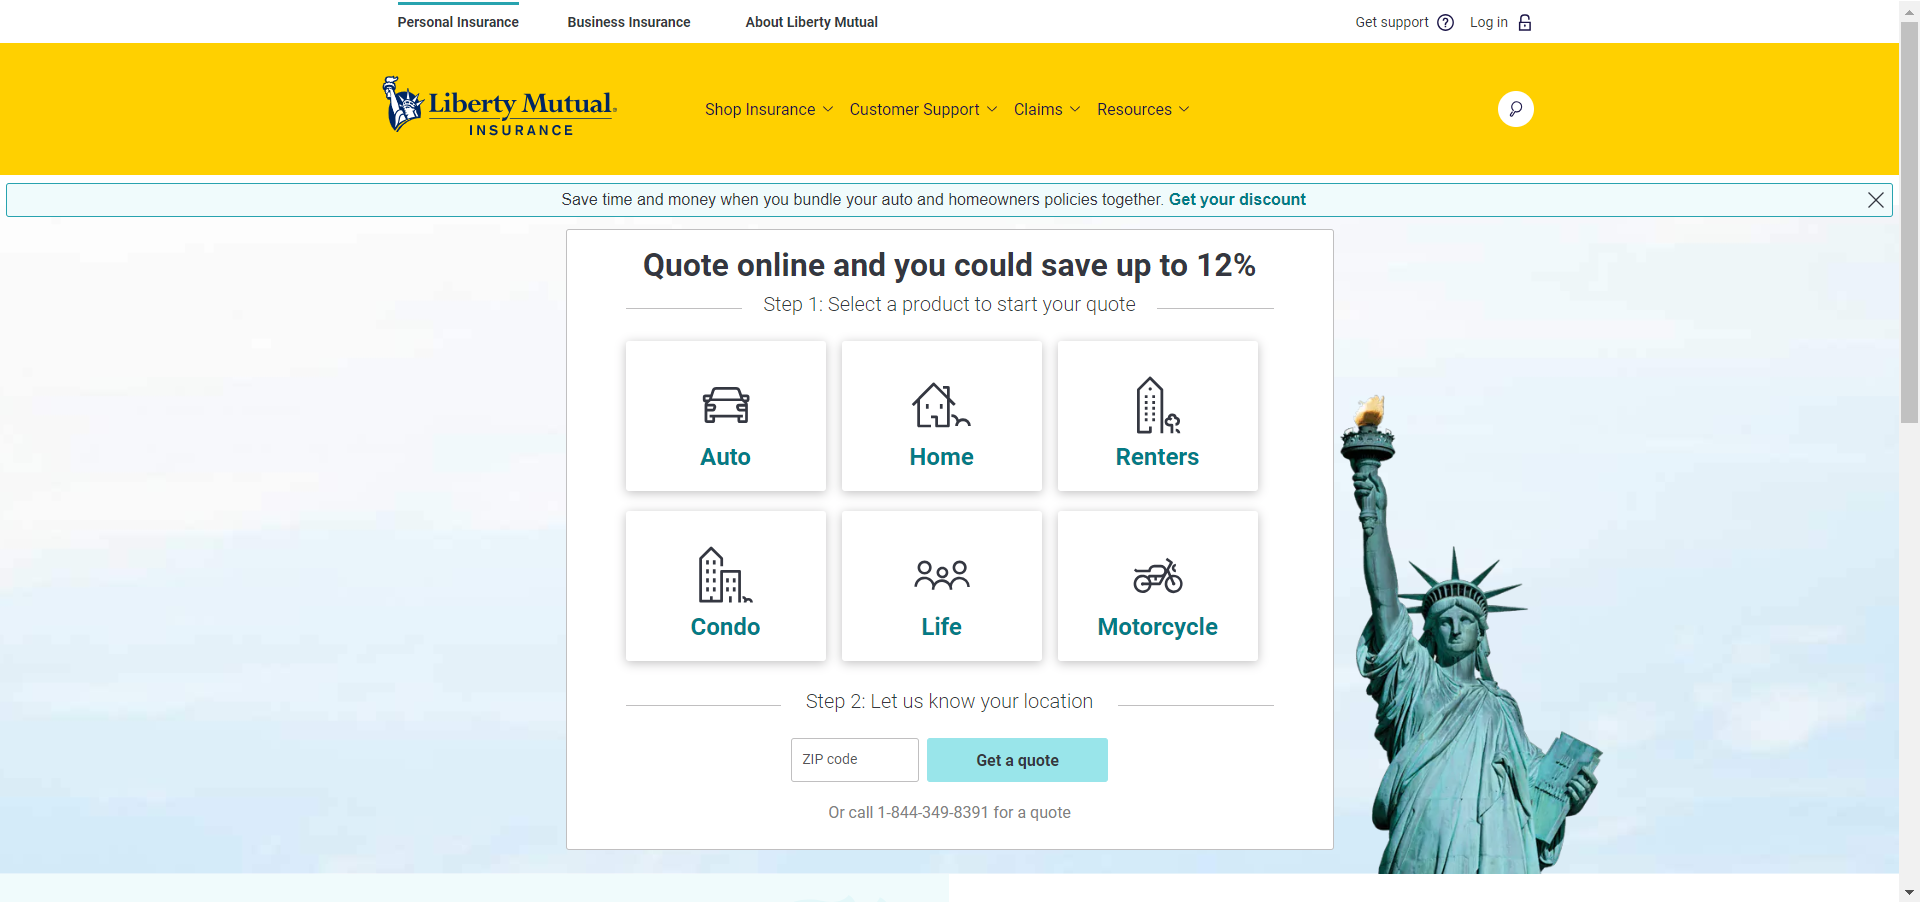 Liberty Mutual Home Page Quote Directions 1